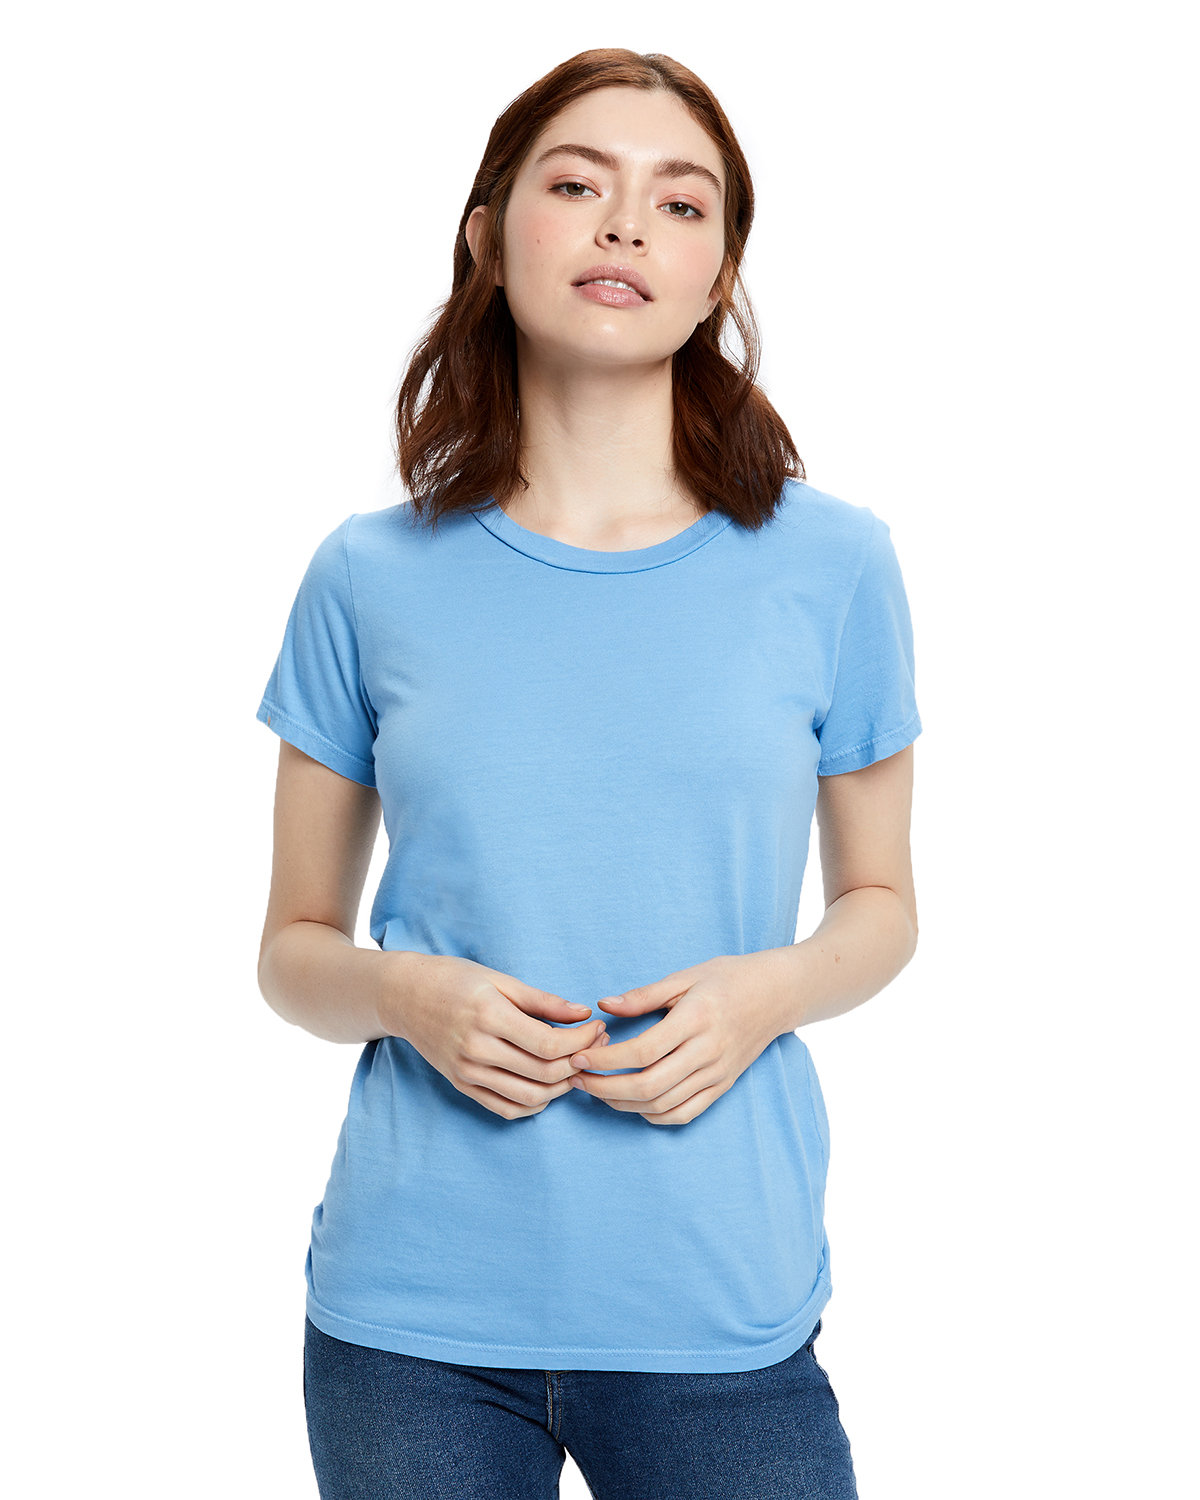 US Blanks Ladies' Made in USA Short Sleeve Crew T-Shirt BIG BLUE